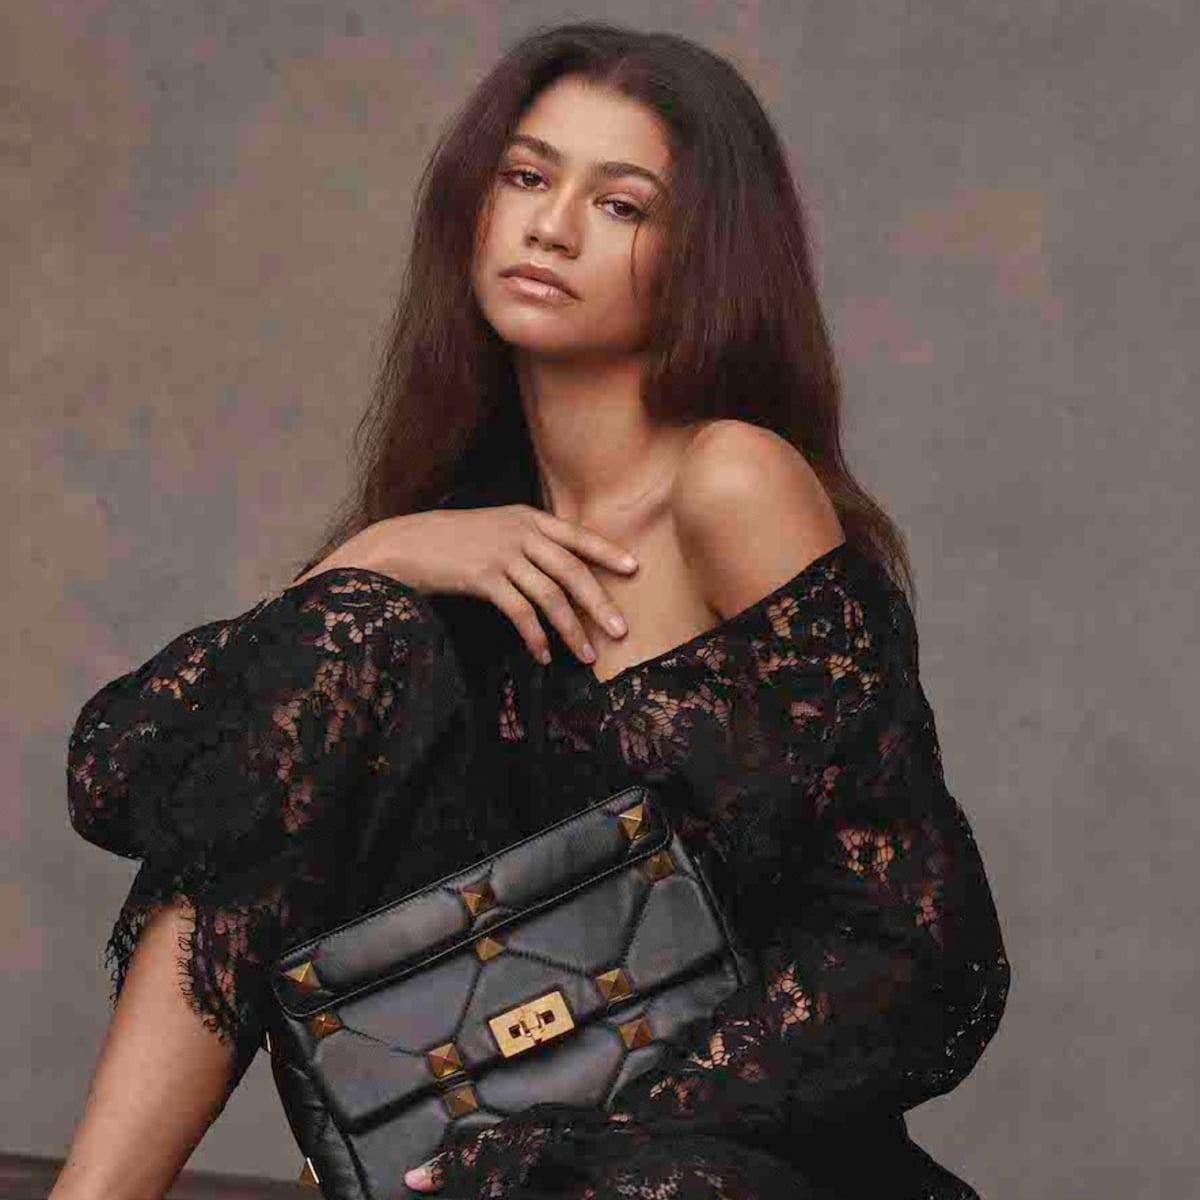 Zendaya Is the New Face of Valentino - Fashionista